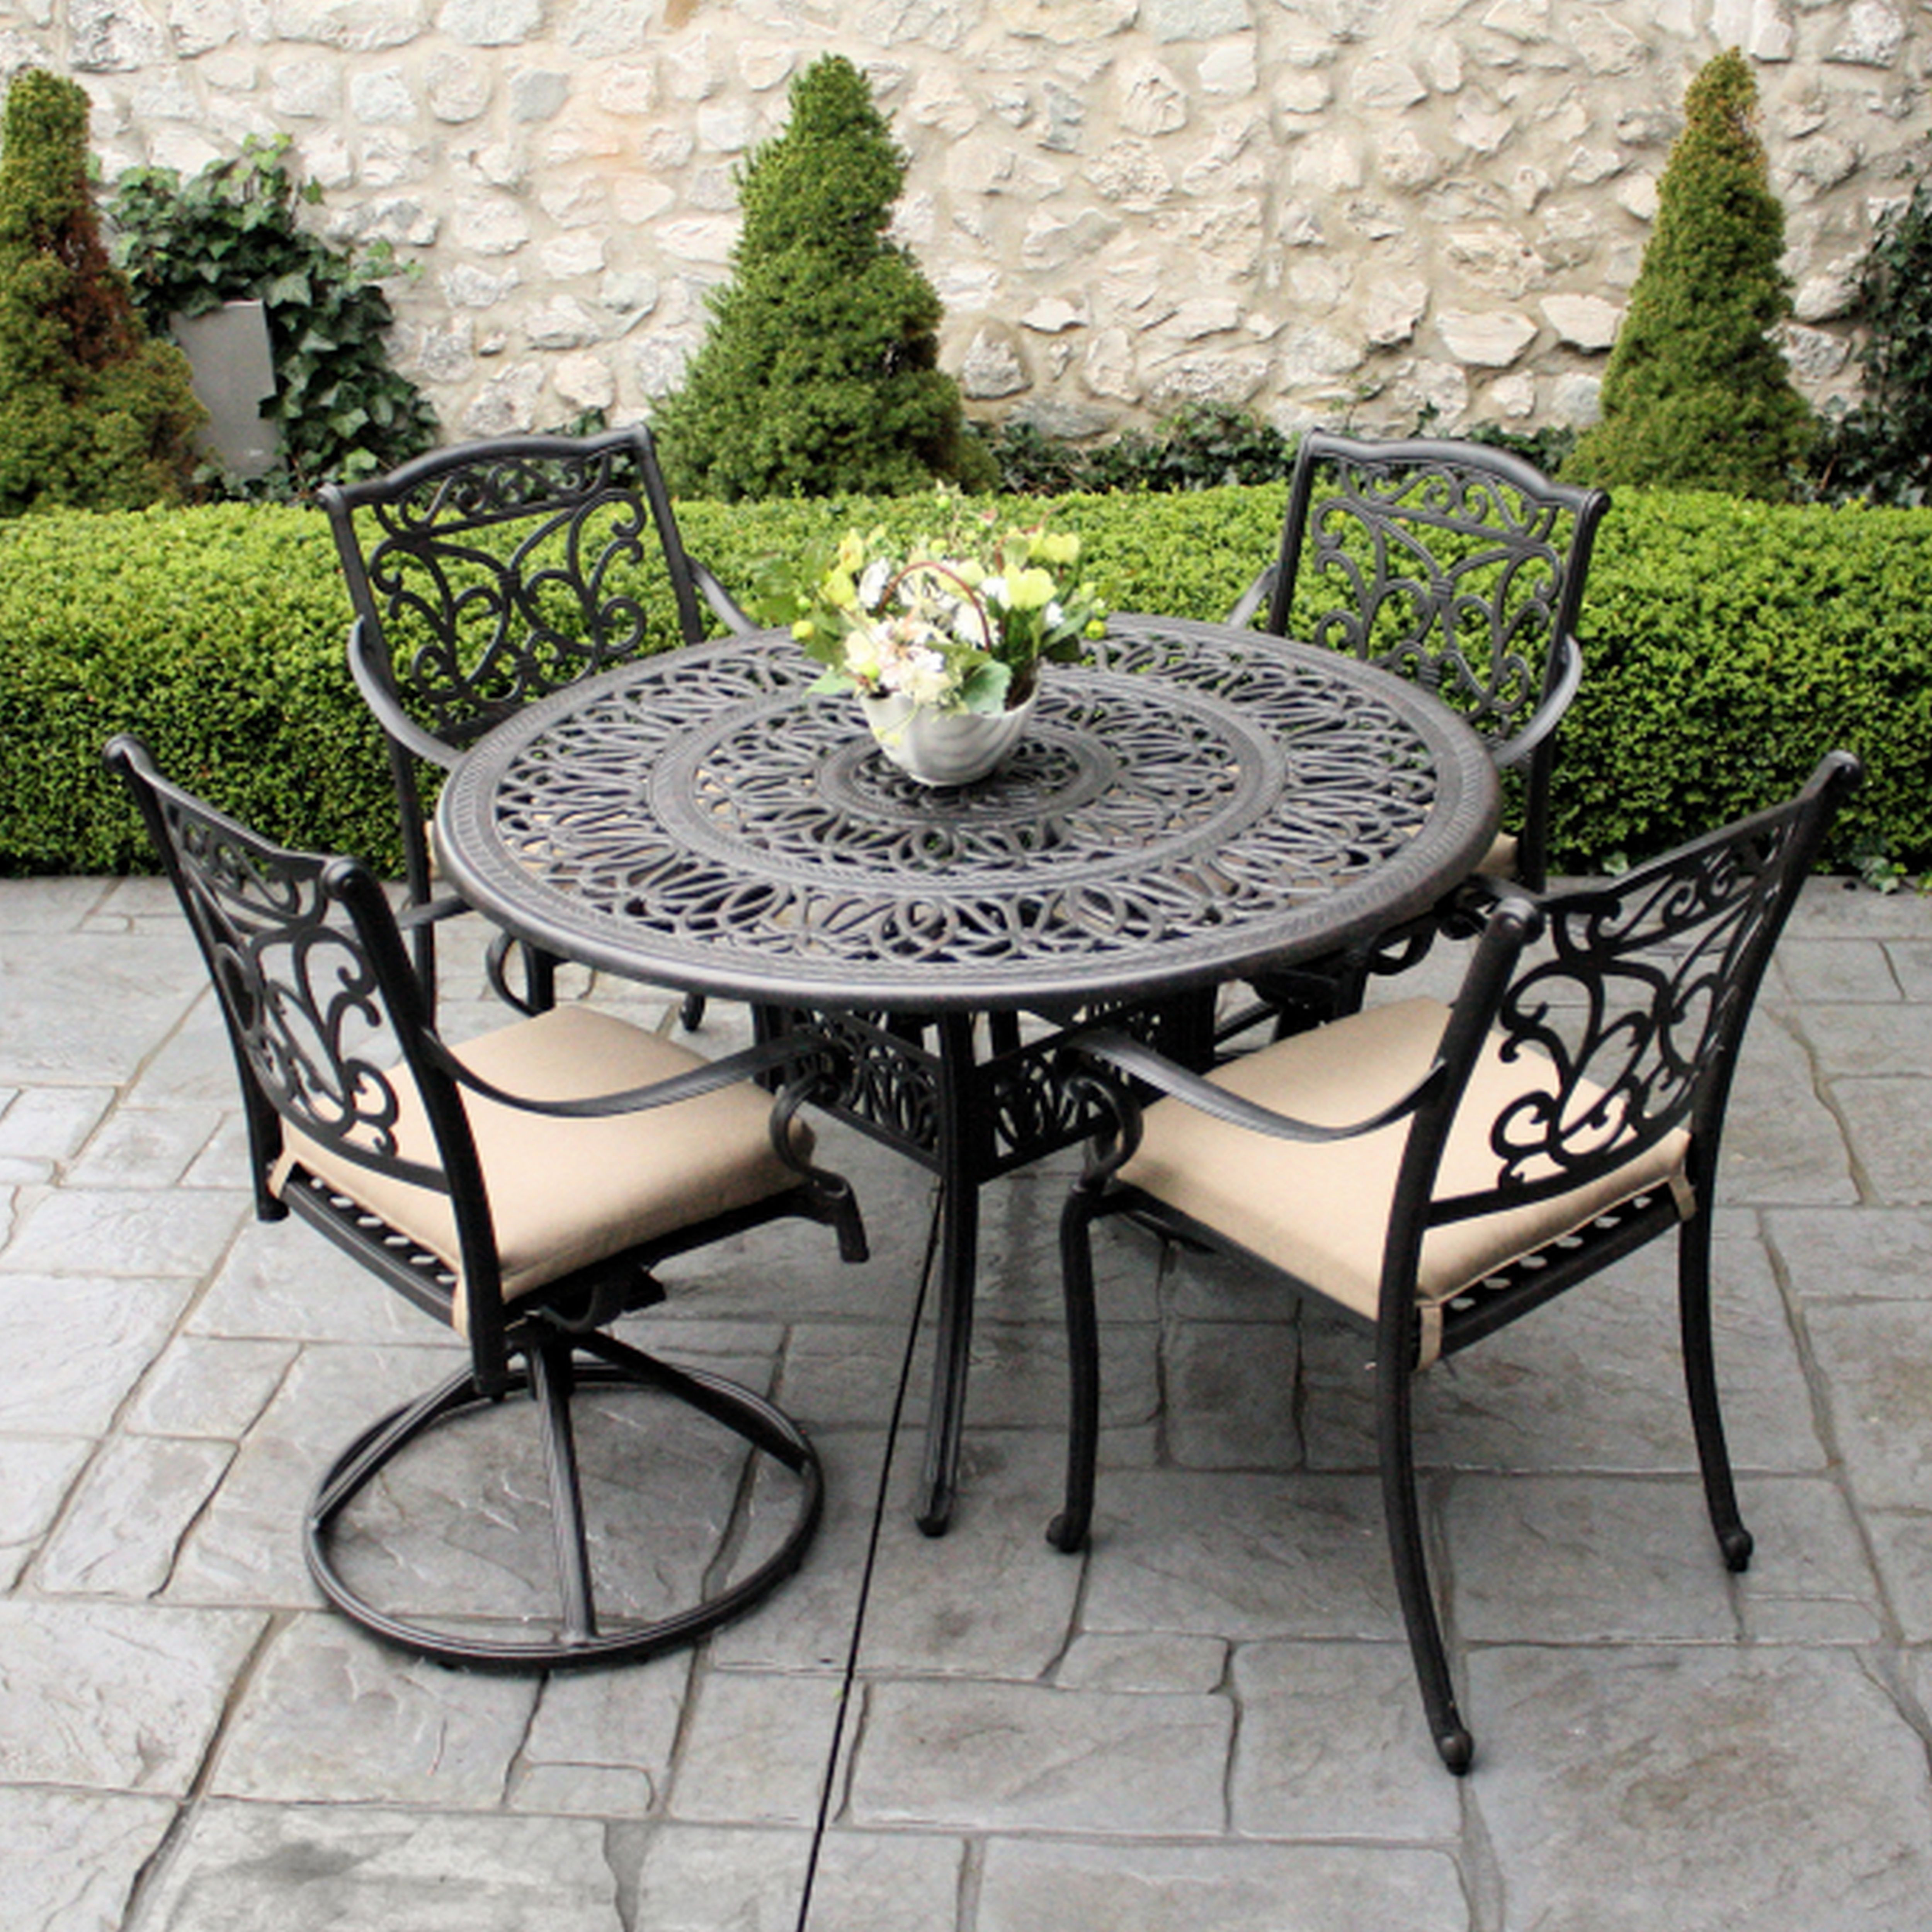 Best ideas about Patio Dining Table Clearance . Save or Pin Patio Astonishing Outdoor Dining Set Clearance Shoprite Now.